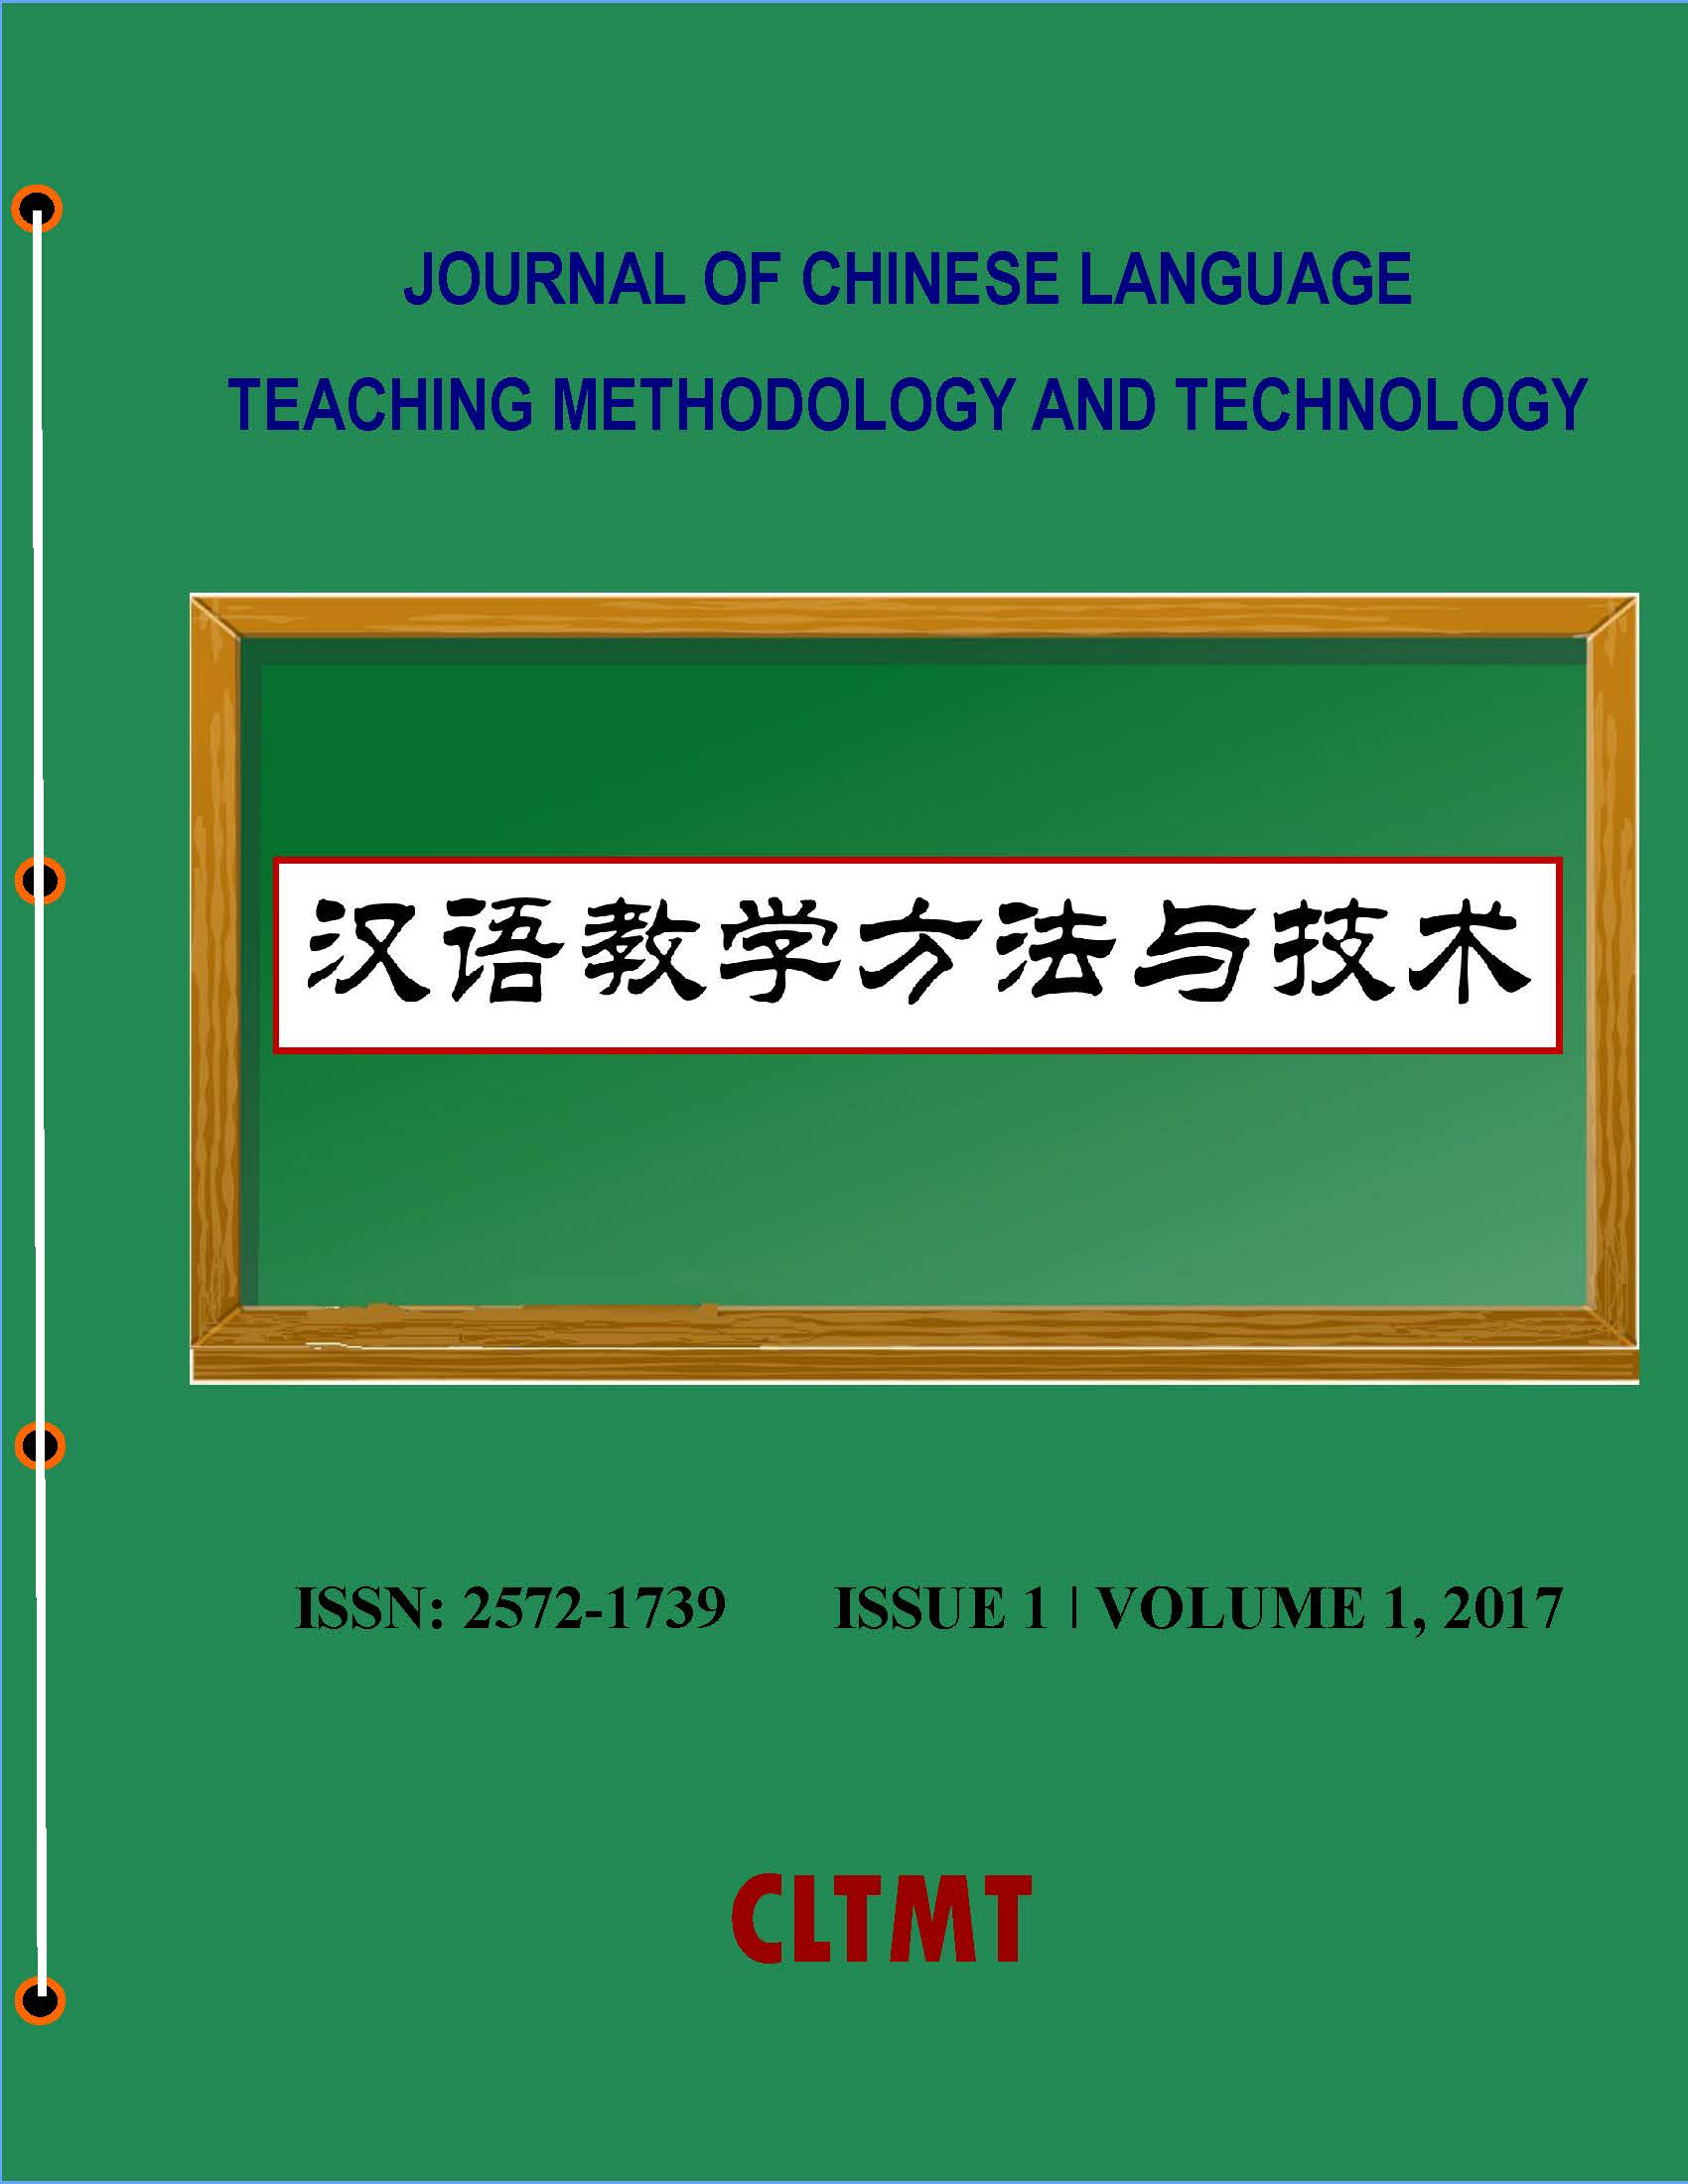 Chinese Language Teaching Methodology and Technology Issue 1